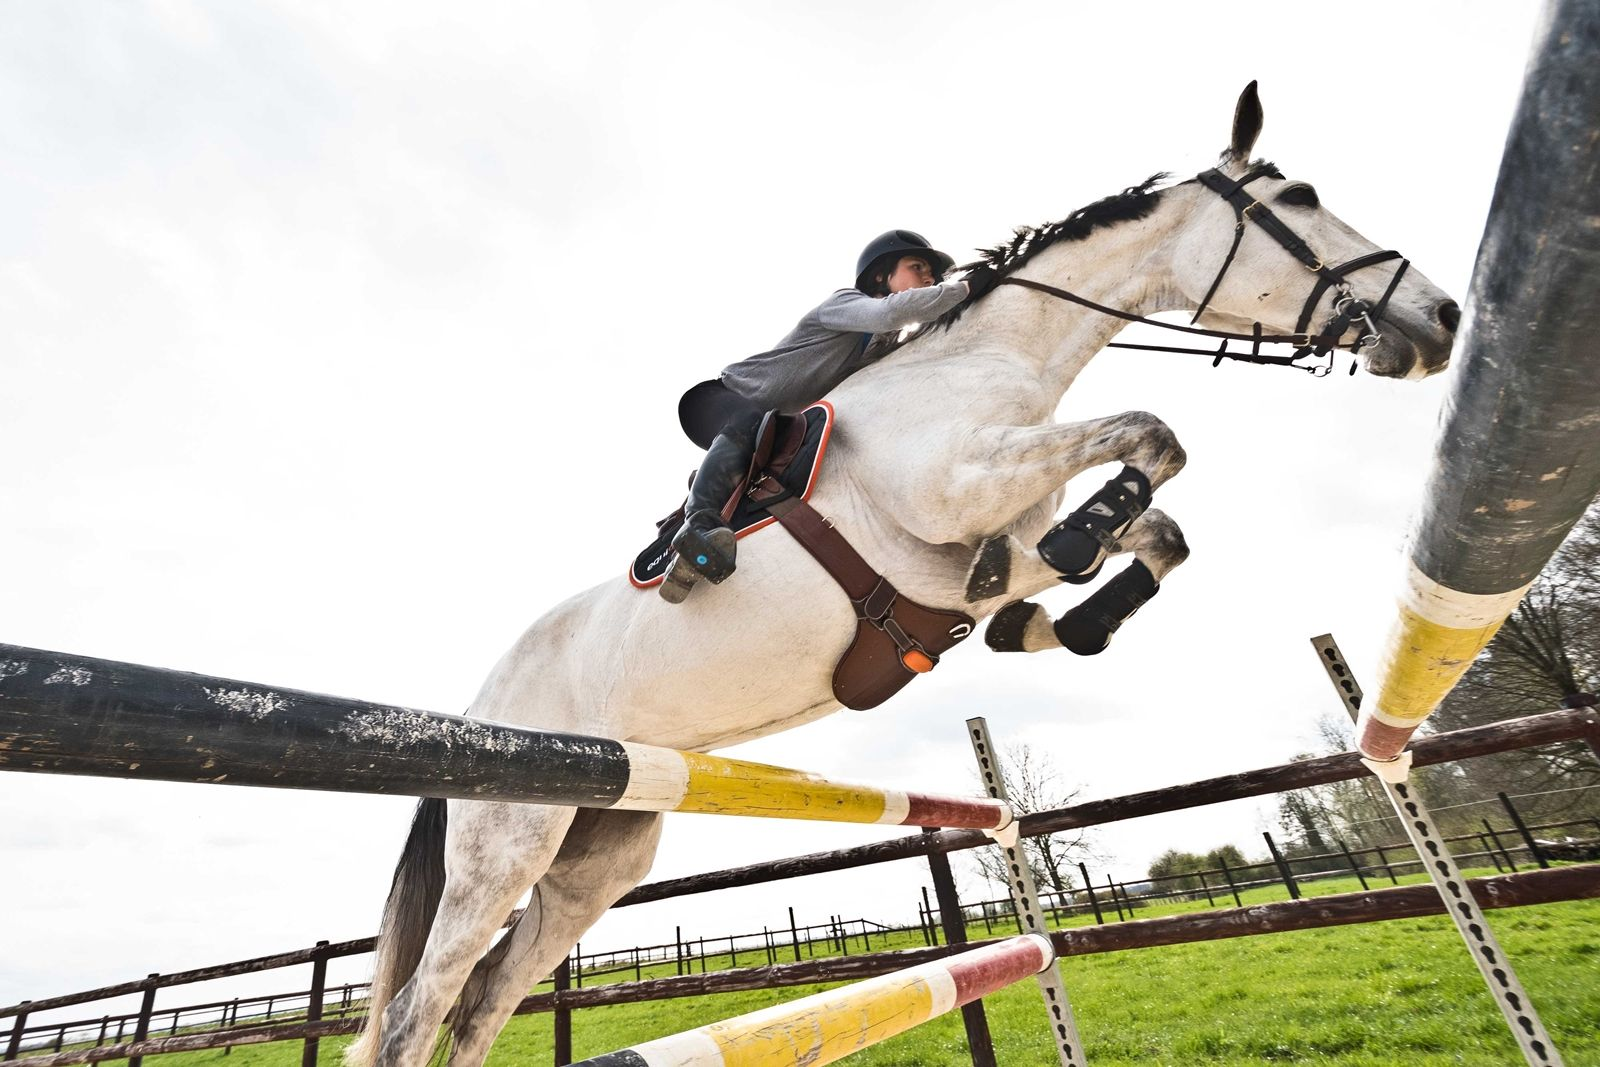 High Tech Equine Research With Images Horses Horse Training Equines